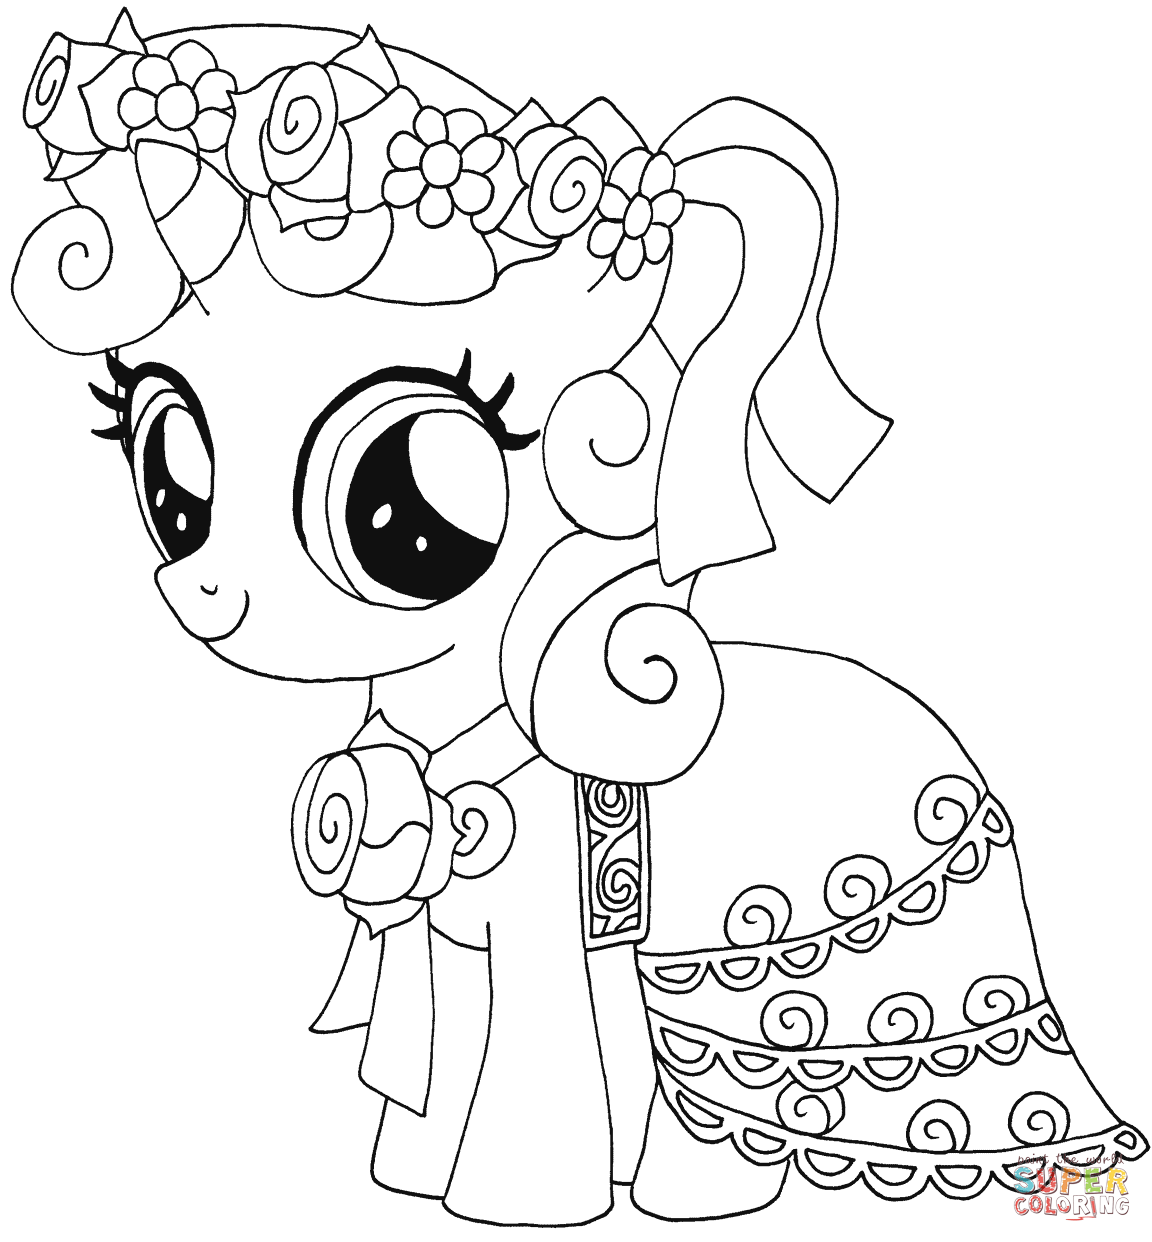 my little pony print outs my little pony coloring pages coloring pages for kids print little pony outs my